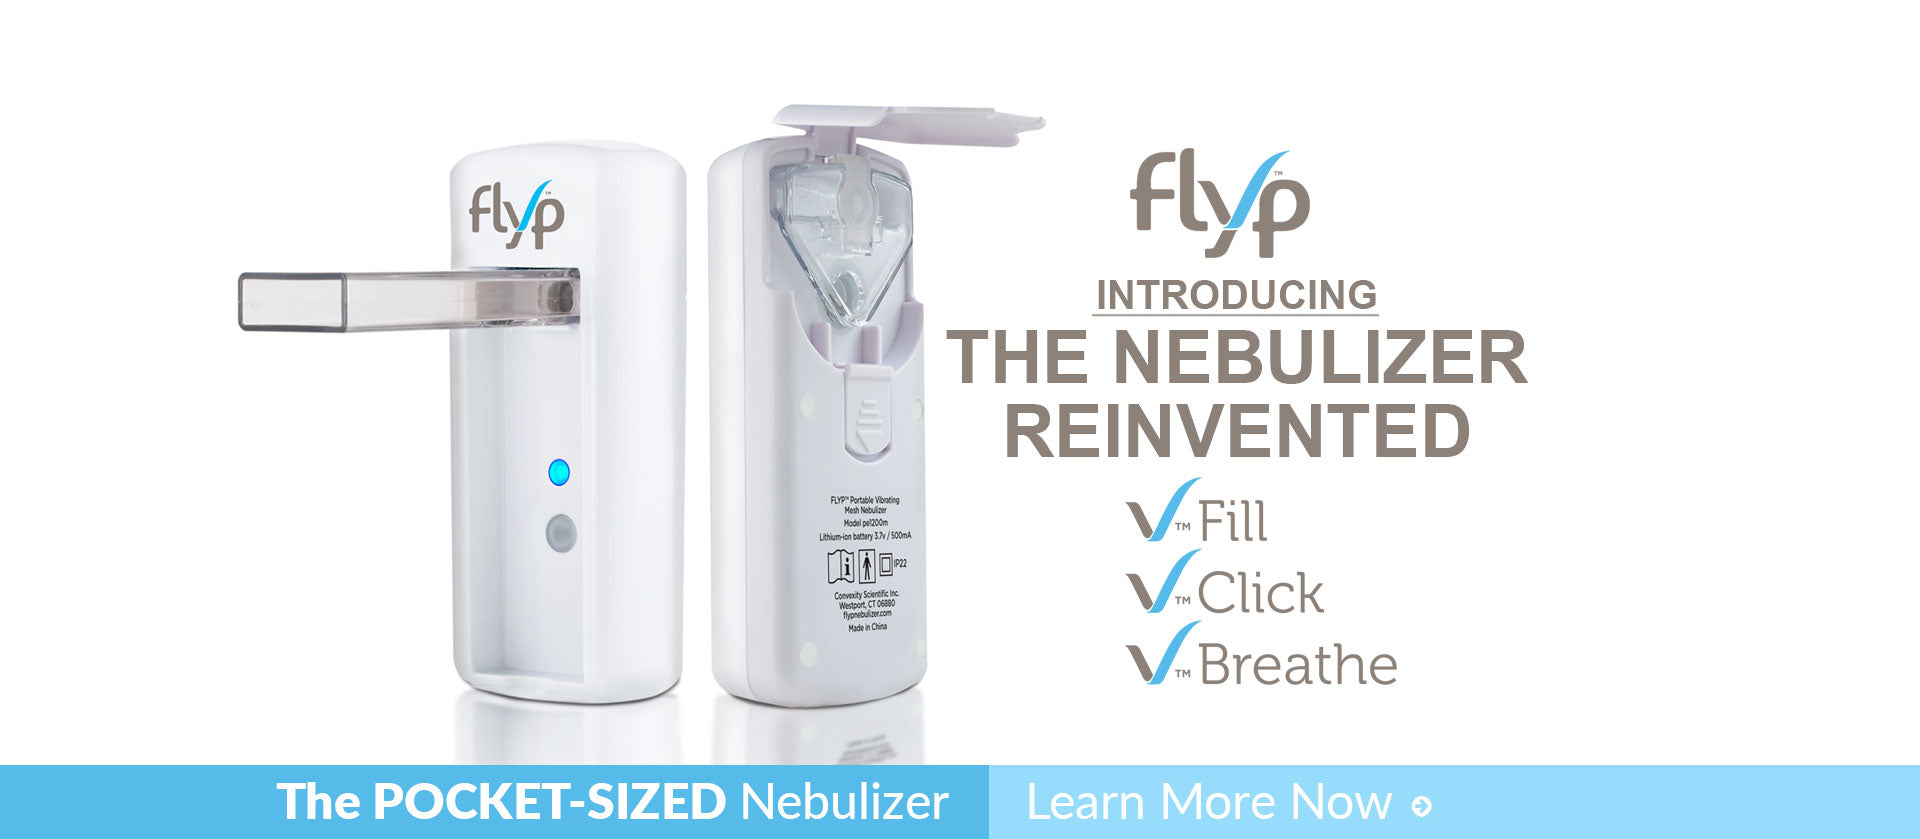 Buy Flyp Nebulizer. Pocket-Sized, rechargeable nebulizer